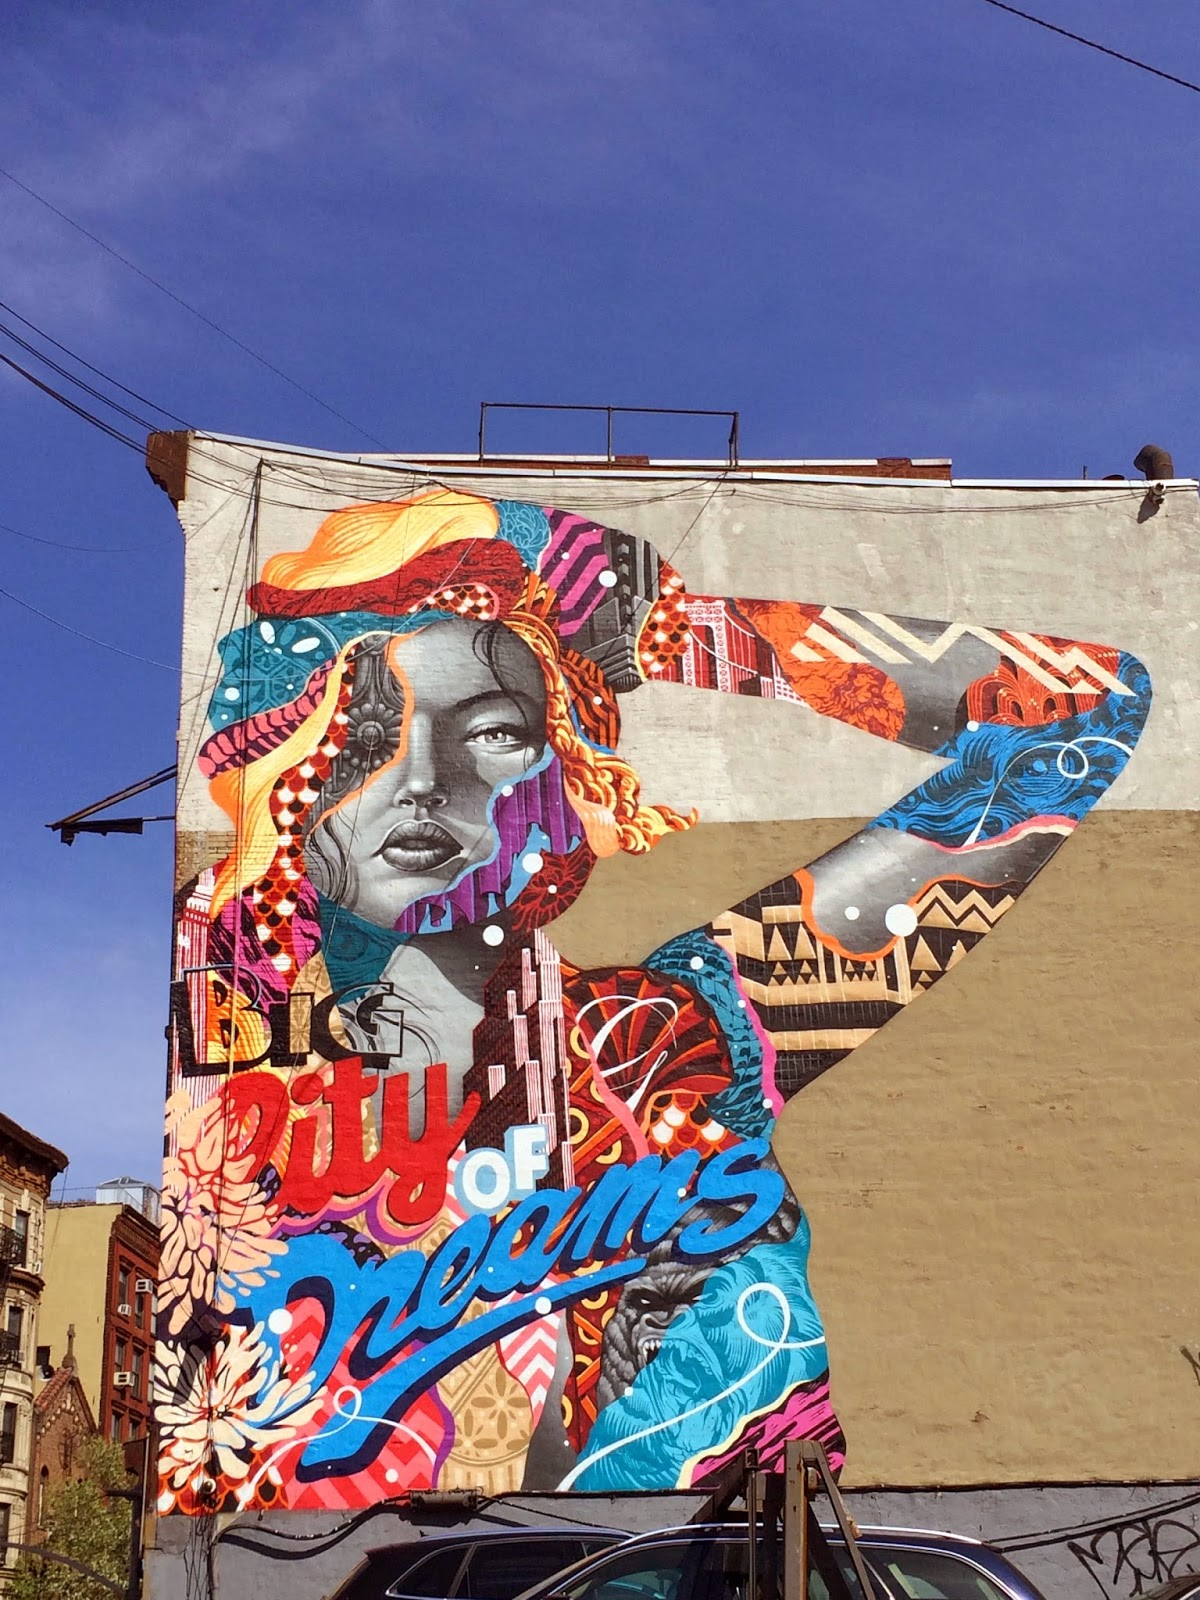 Tristan Eaton unveils Big City Dreams his newest mural in New York City - the vandallist (2)